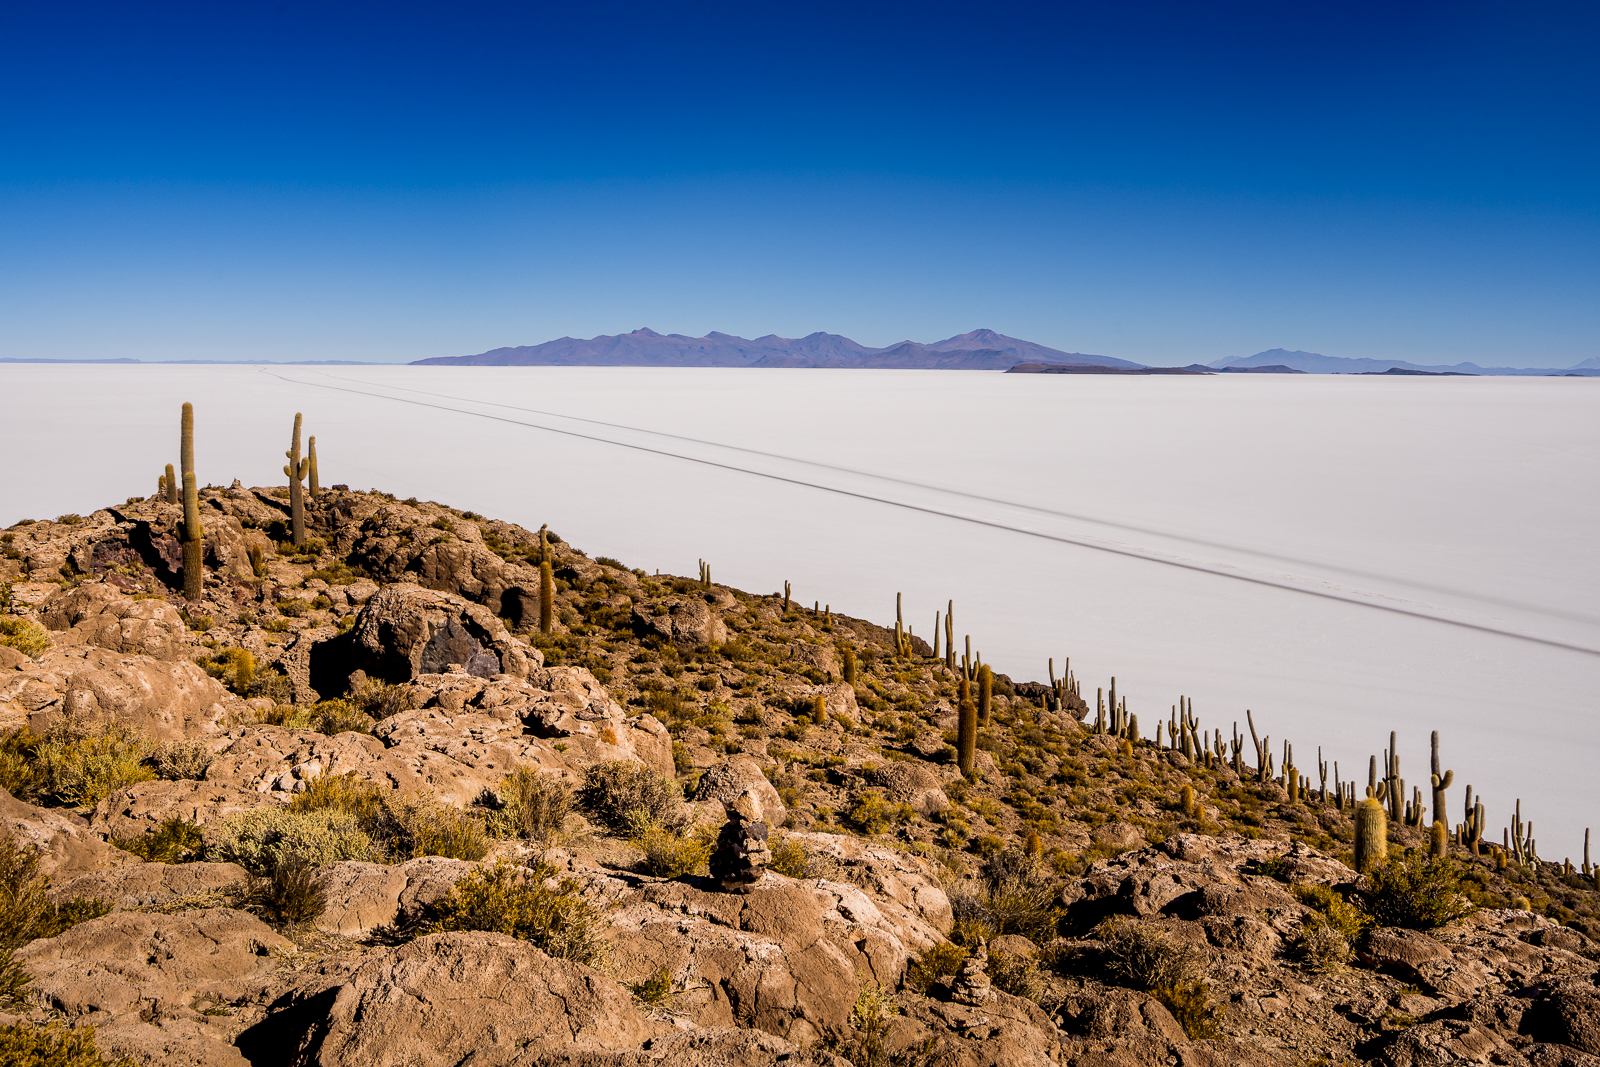 The salt flats seen from the top of cactus island